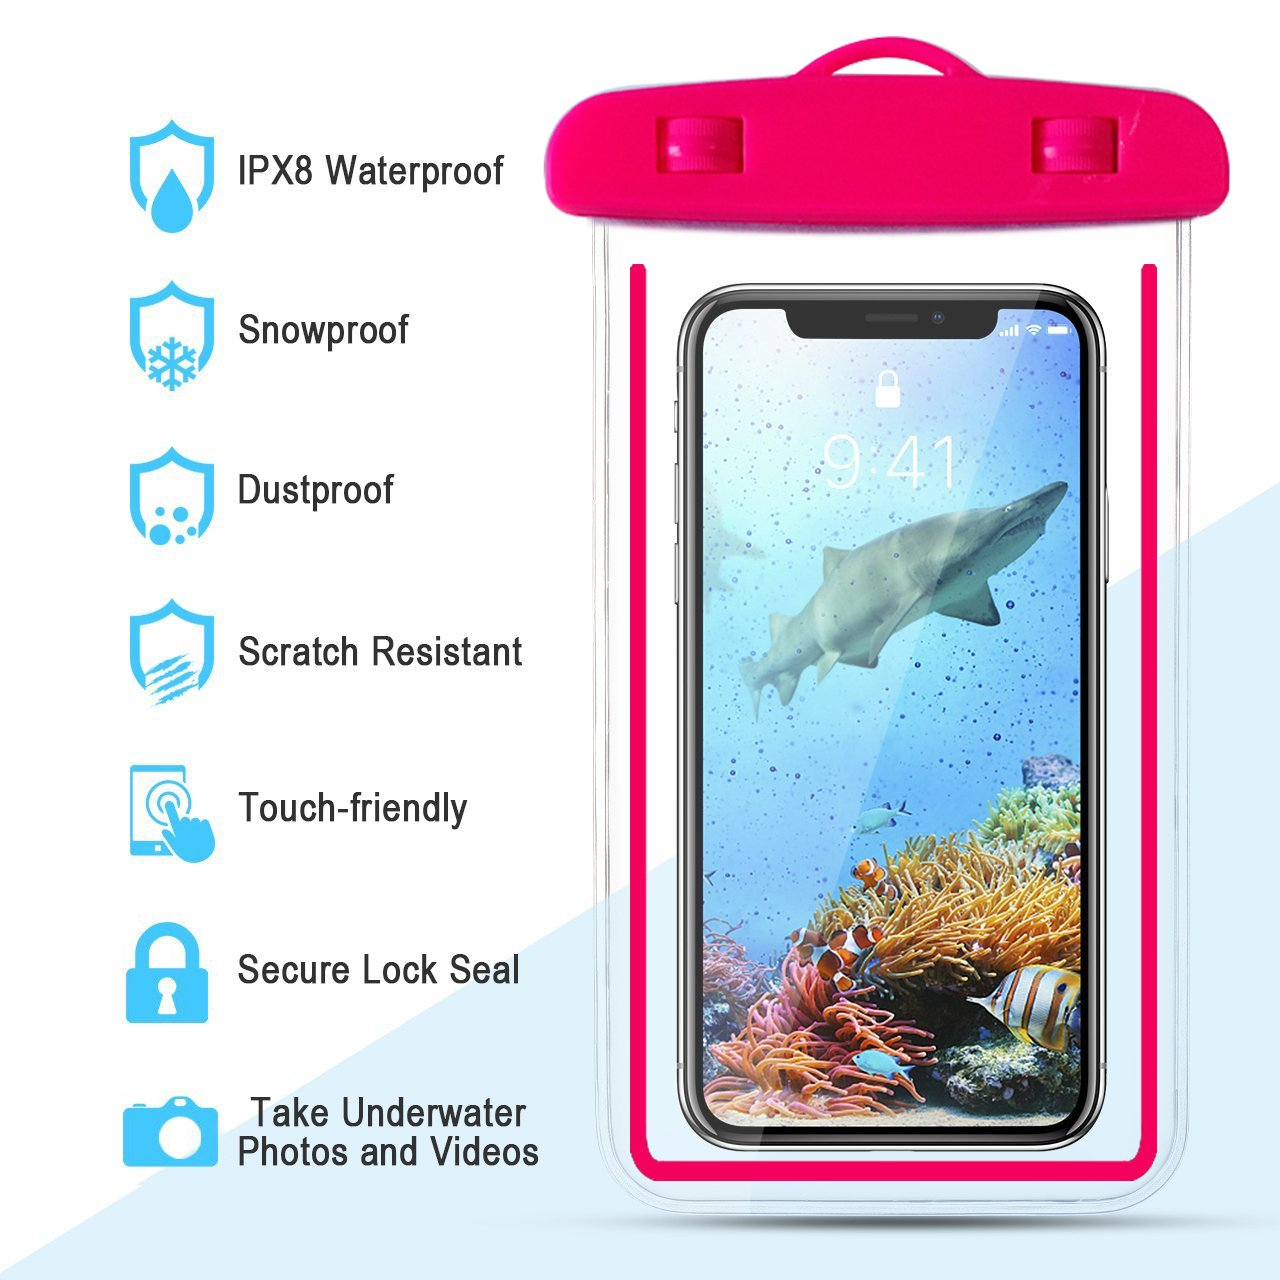 4-Pack Universal Waterproof Case,IPX8 Waterproof Phone Pouch Dry Bag for iPhone X/8/8plus/7/7plus/6s/6/6s plus Samsung galaxy s8/s7 Google Pixel HTC10 (Blue) by Banter (Image #4)